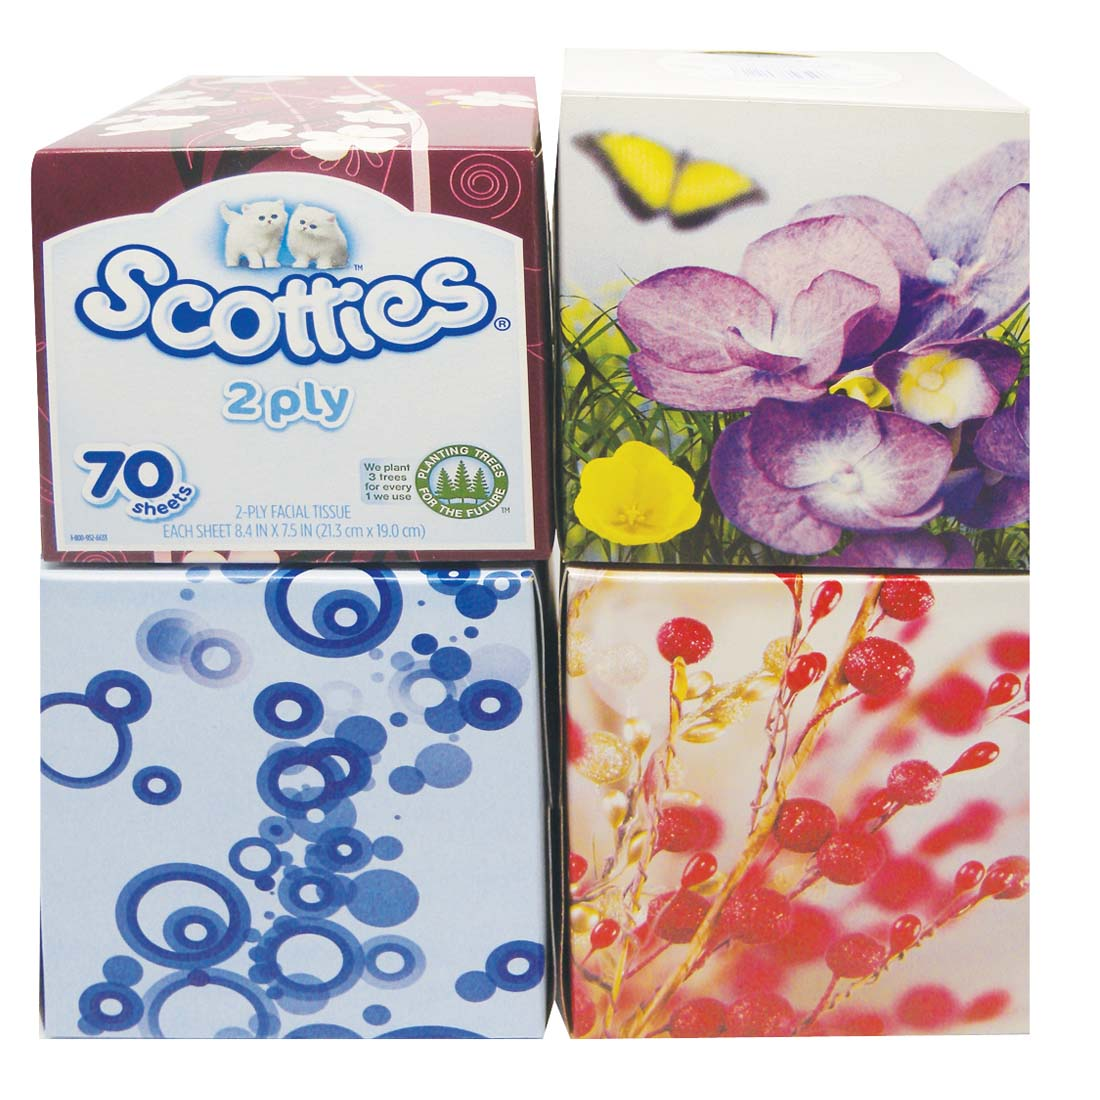 View SCOTTIES FACIAL TISSUE 70 2-PLY SHEETS